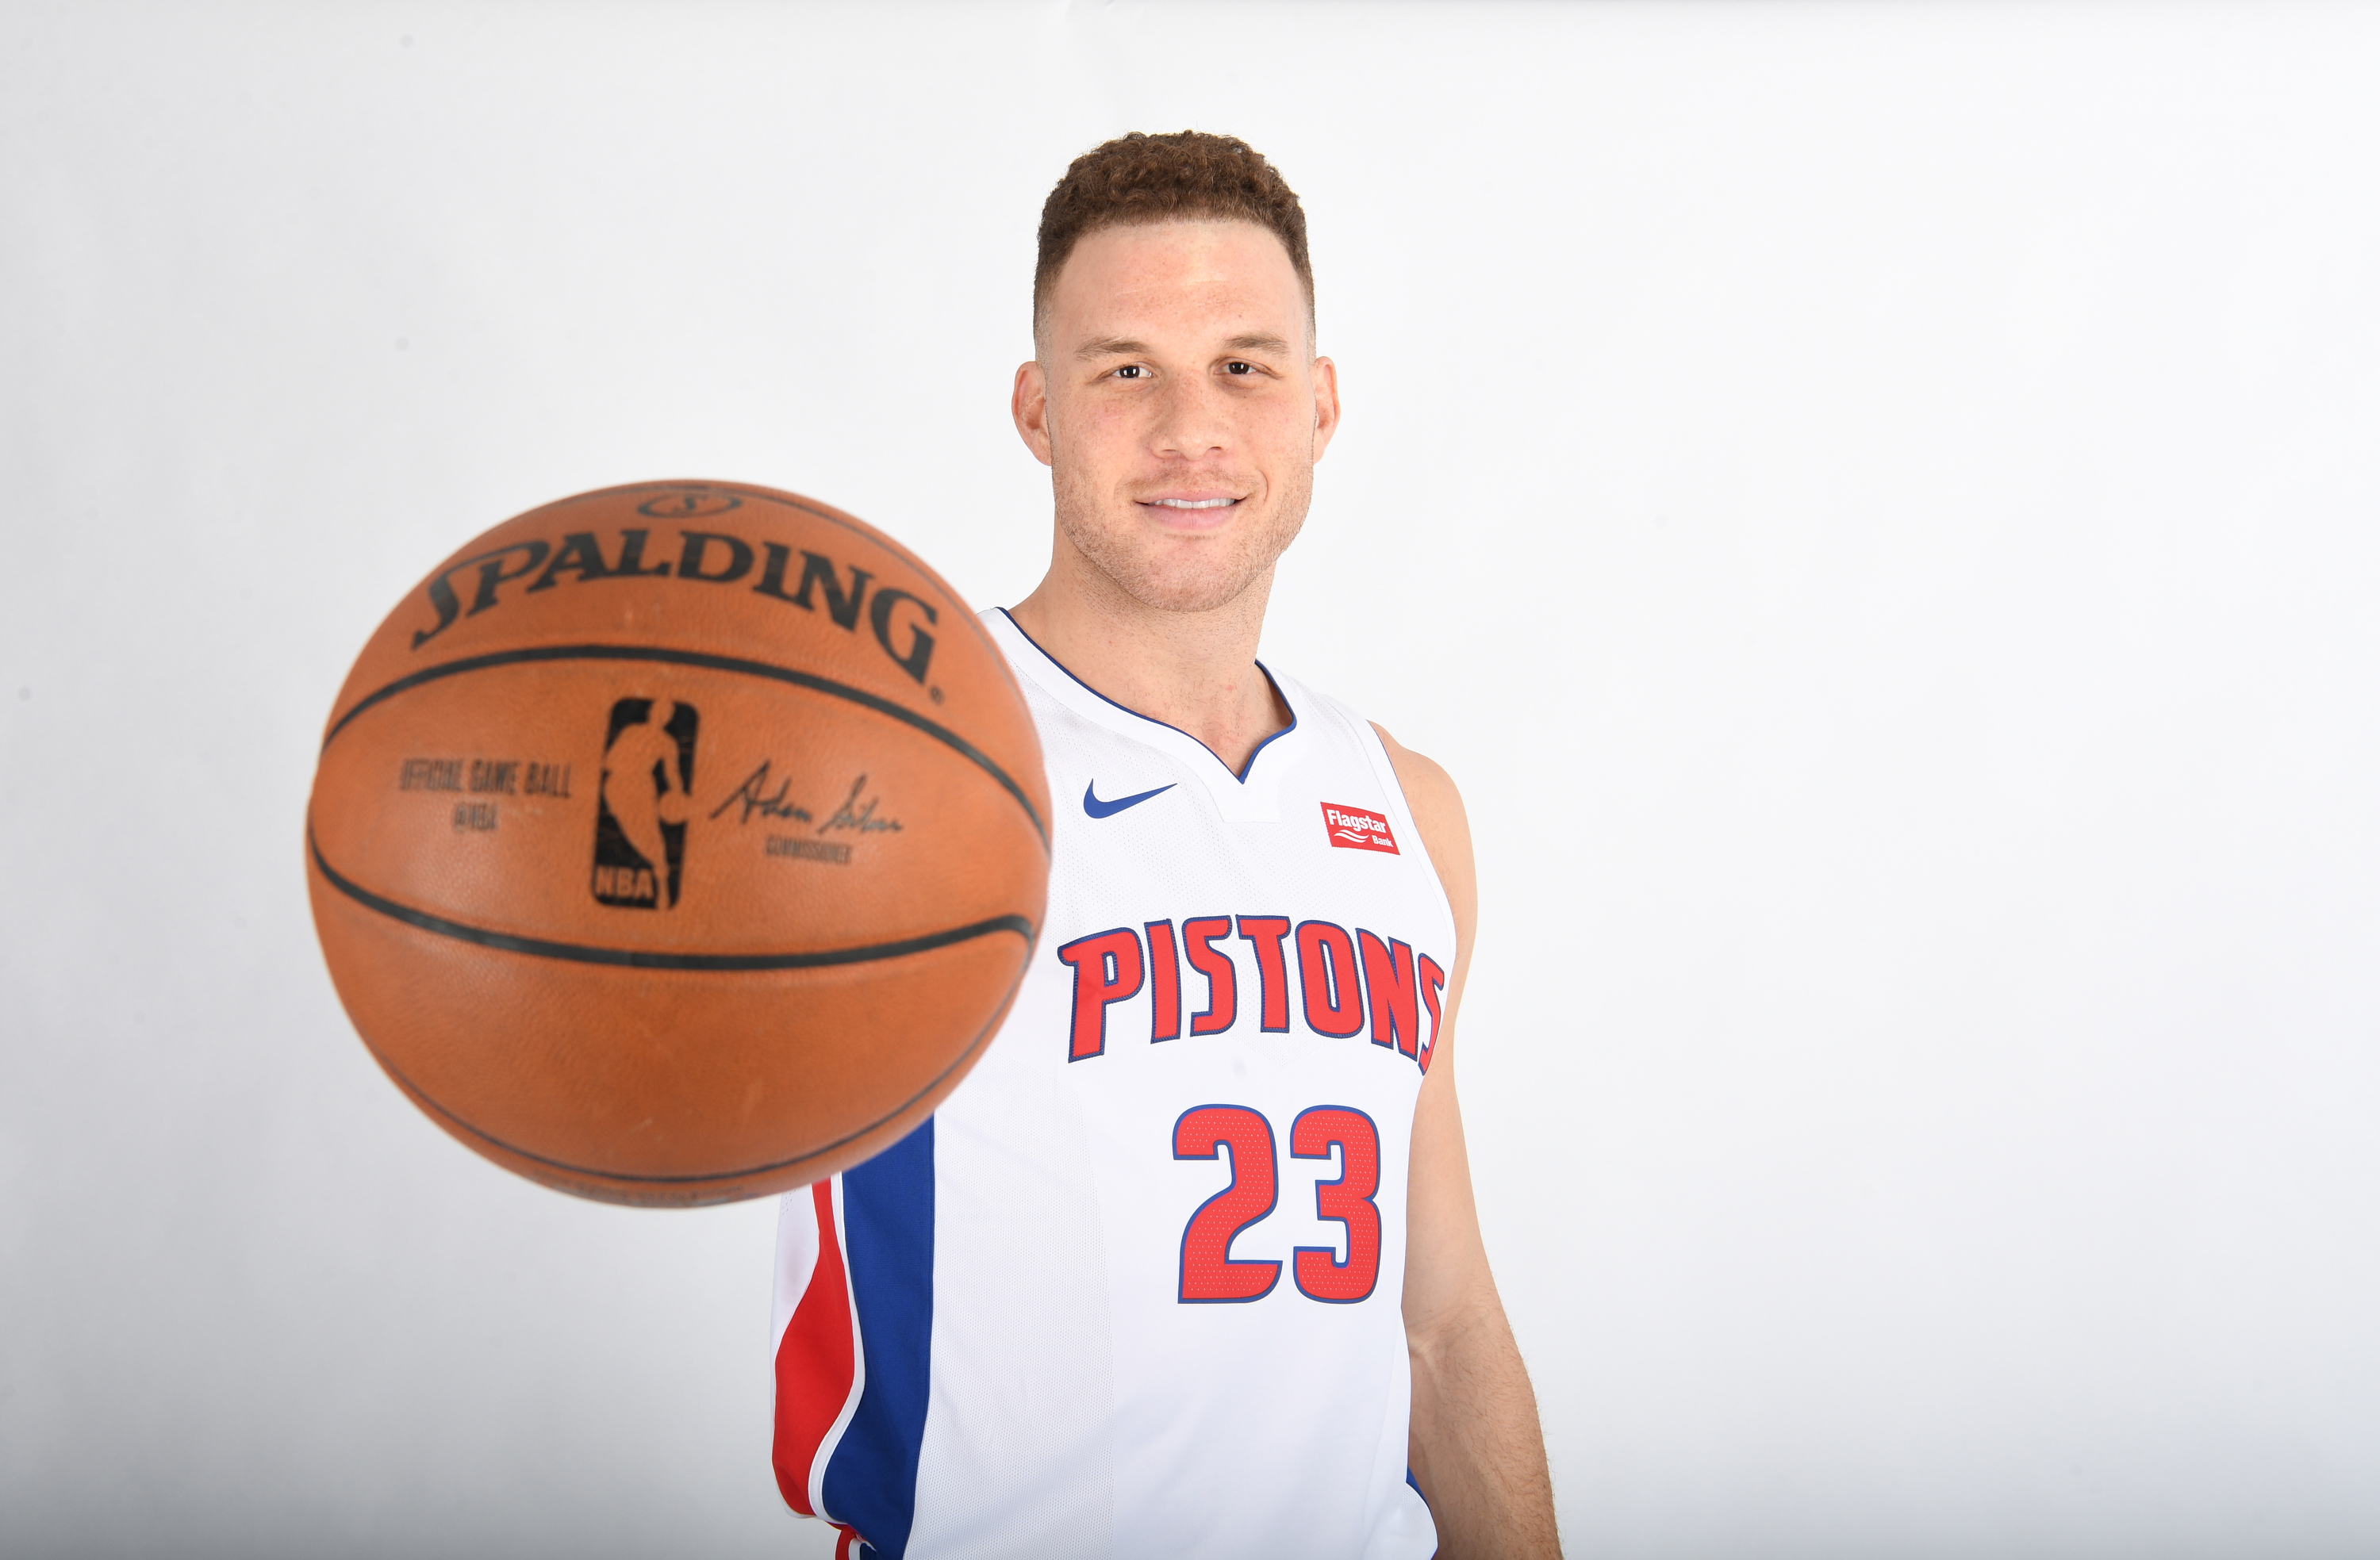 Blake Griffin Makes His Pistons Debut